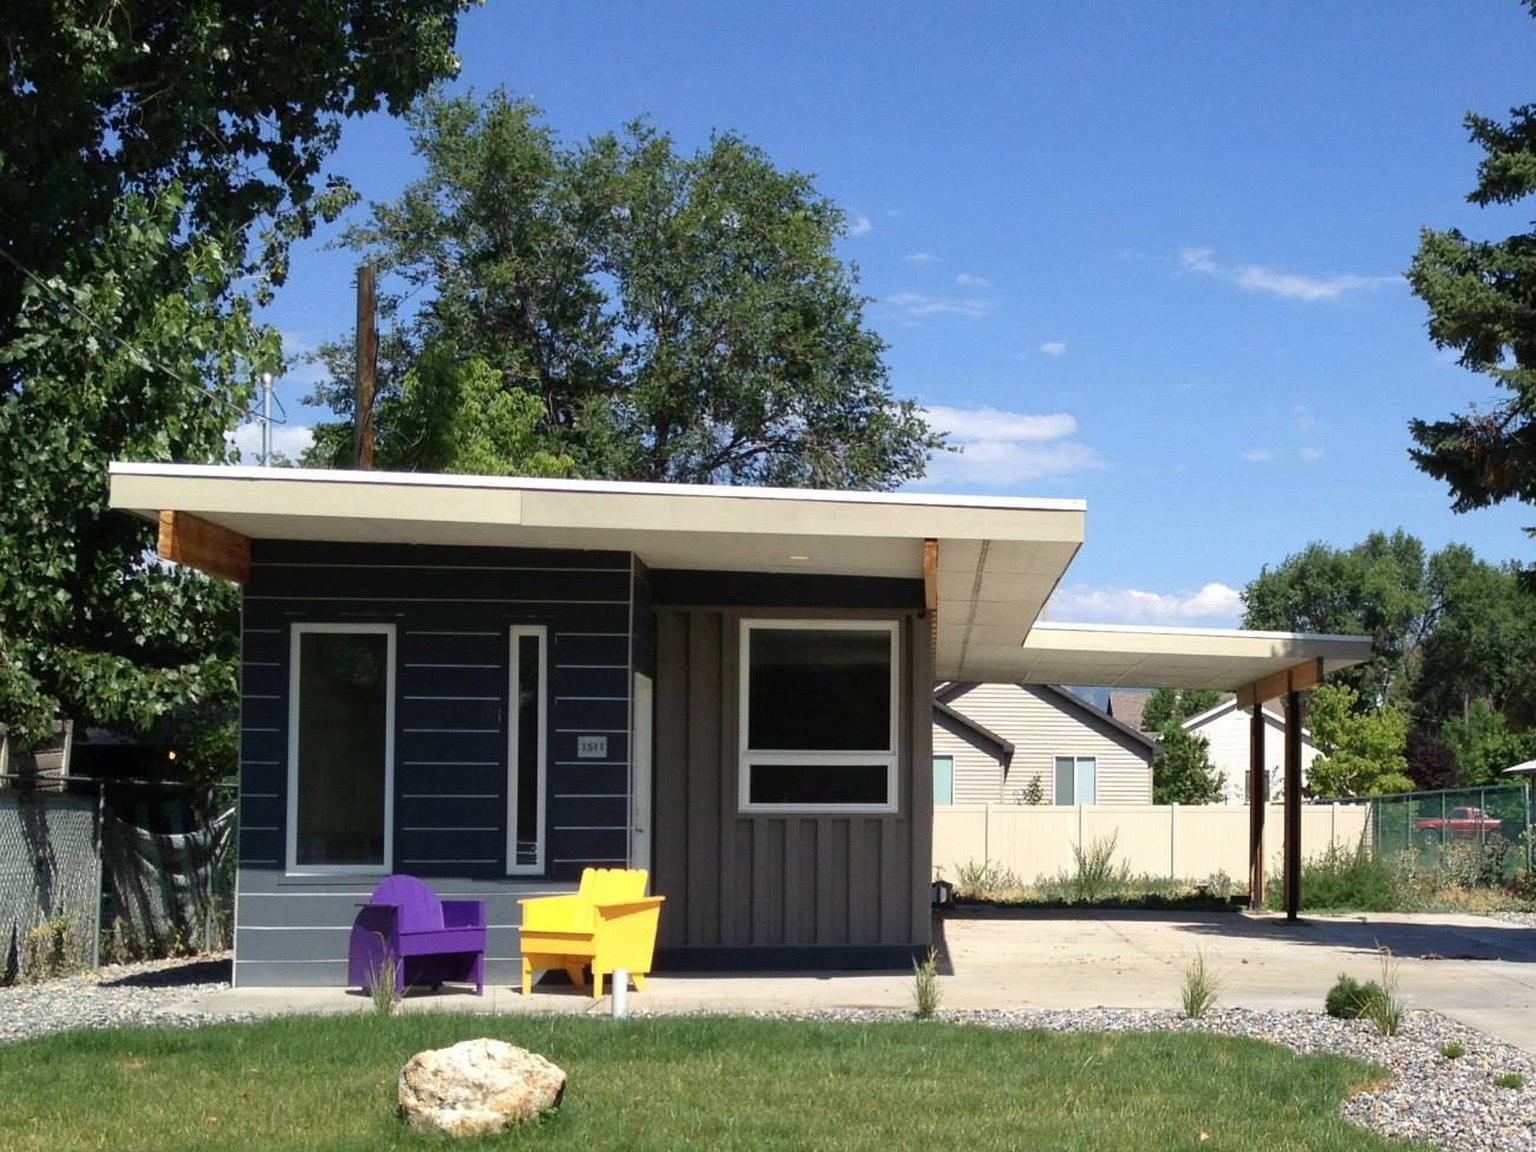 Elegant Sarah House, An Affordable Green Container Home